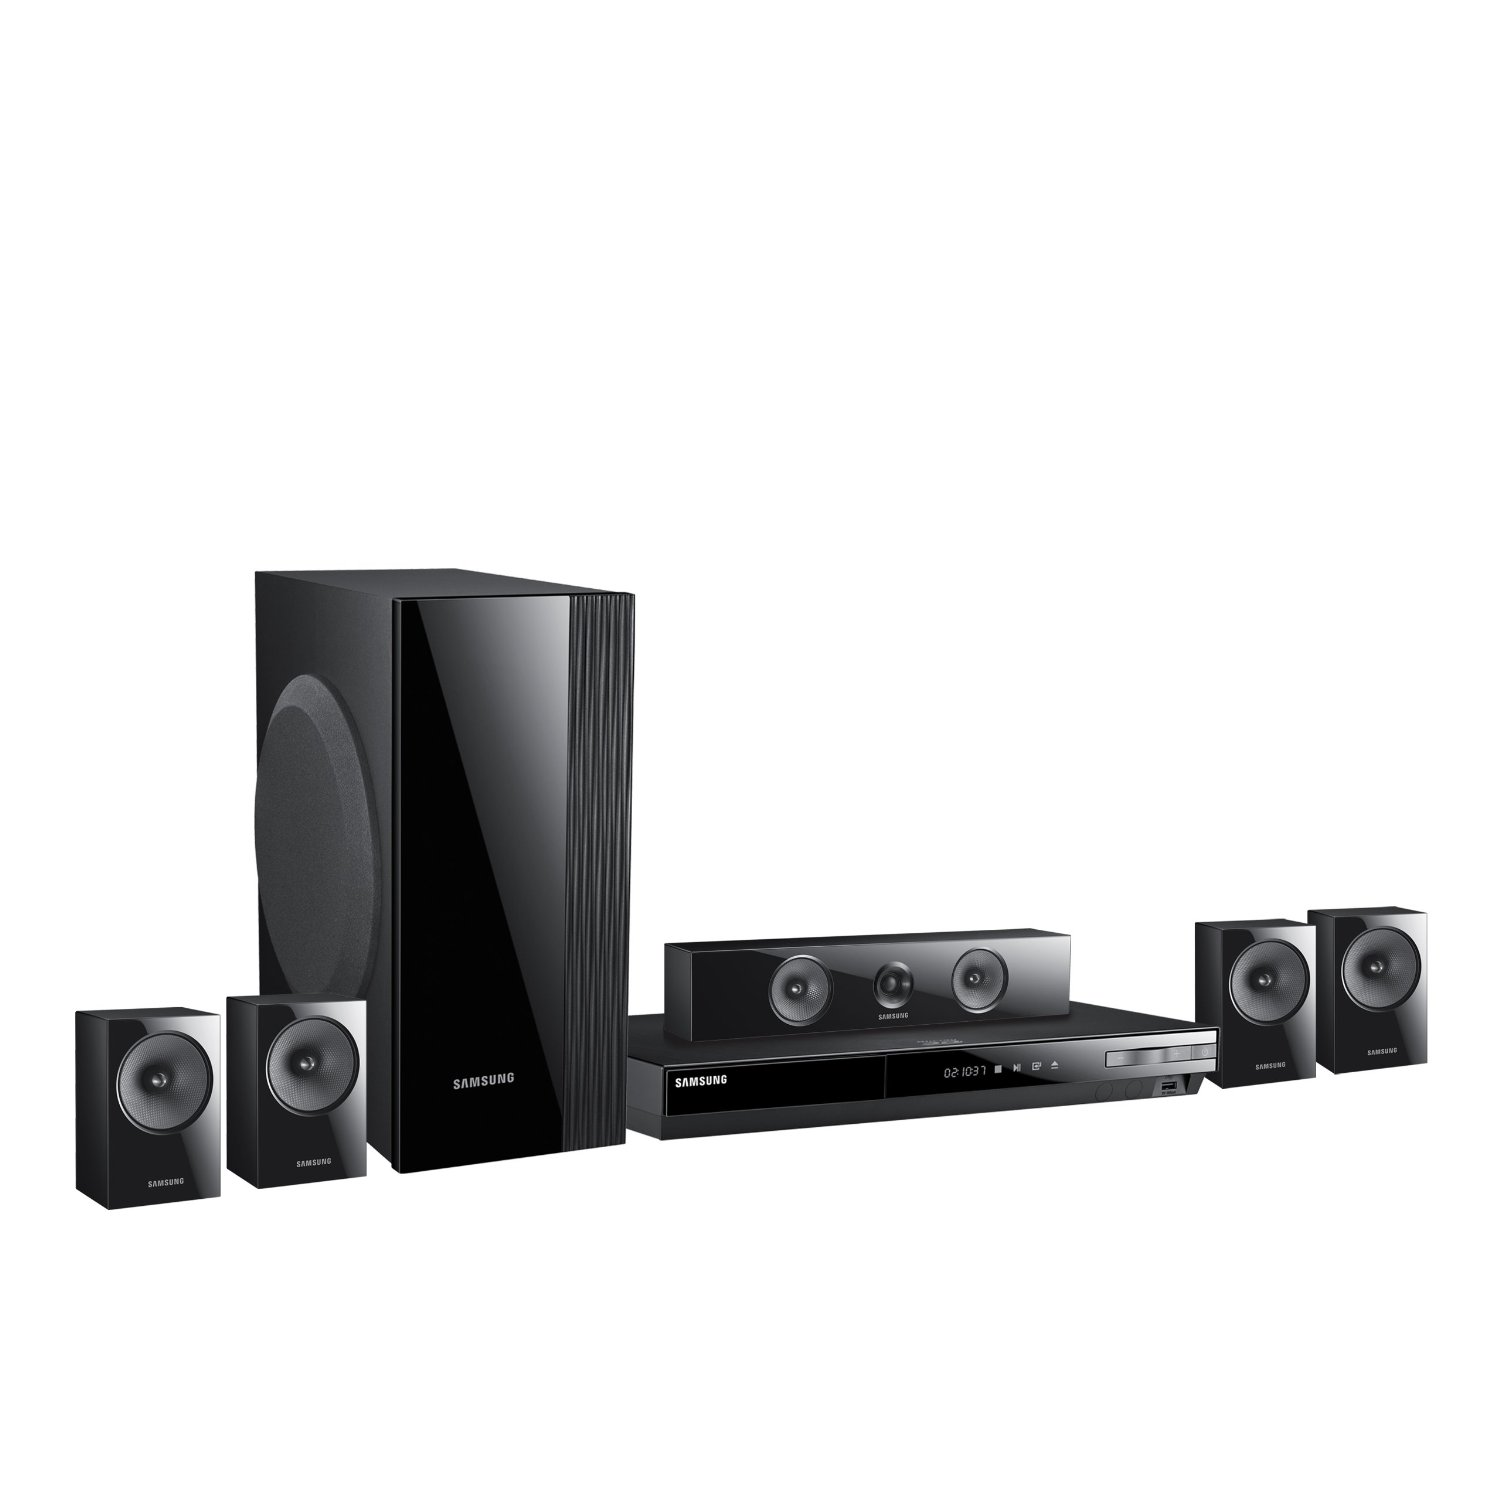 Samsung Ht E5400 51 Channel Smart 3d Blu Ray Home Theater System Bd F5100 Bluray Player